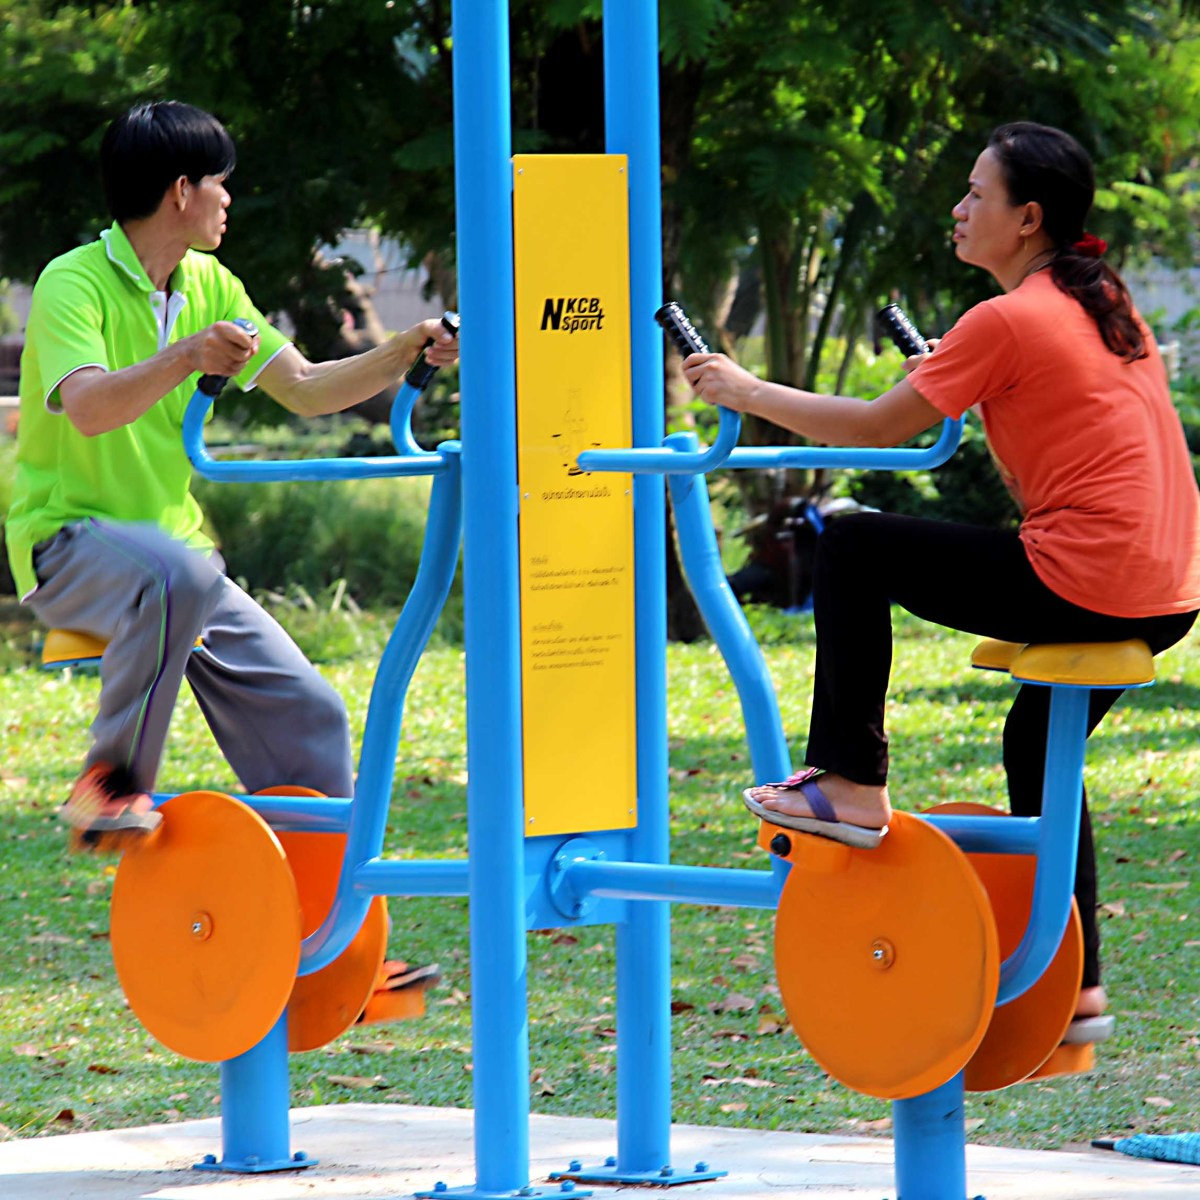 Exercising in Lumpini Park. The number of Bangkokians who choose to exercise or jog in 30C temperatures is impressive!